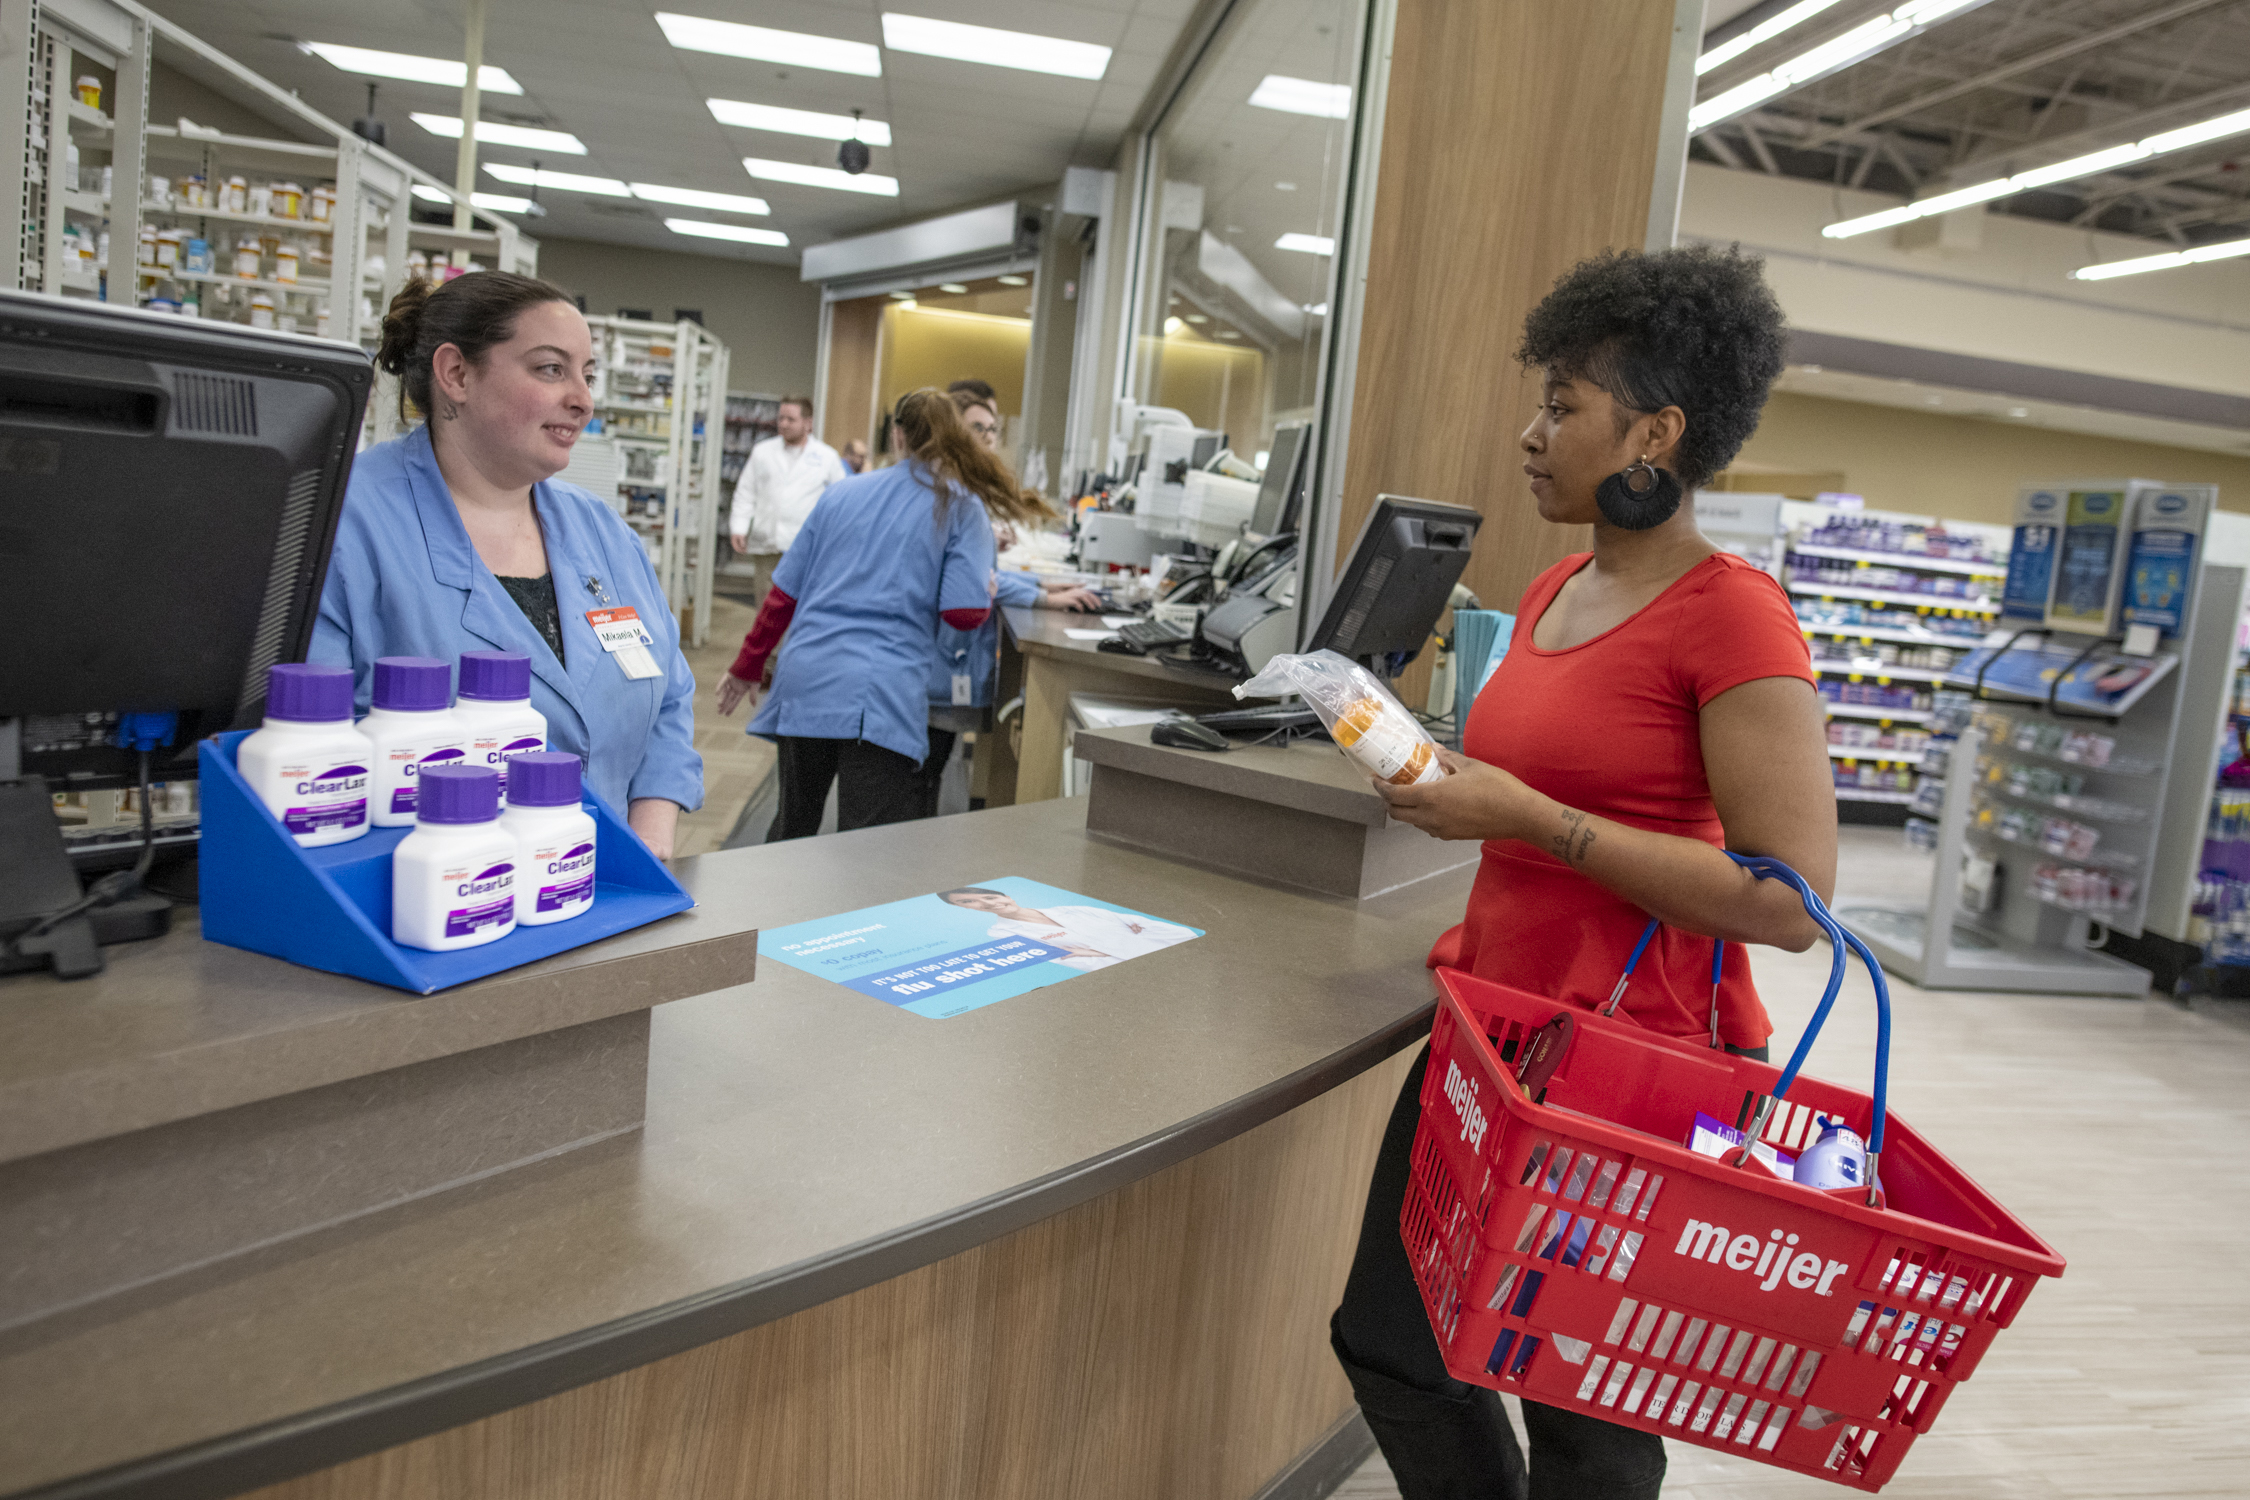 Meijer pharmacists work in partnership with InMar Rx Returns to properly document, transport and dispose of medications on a regular basis.